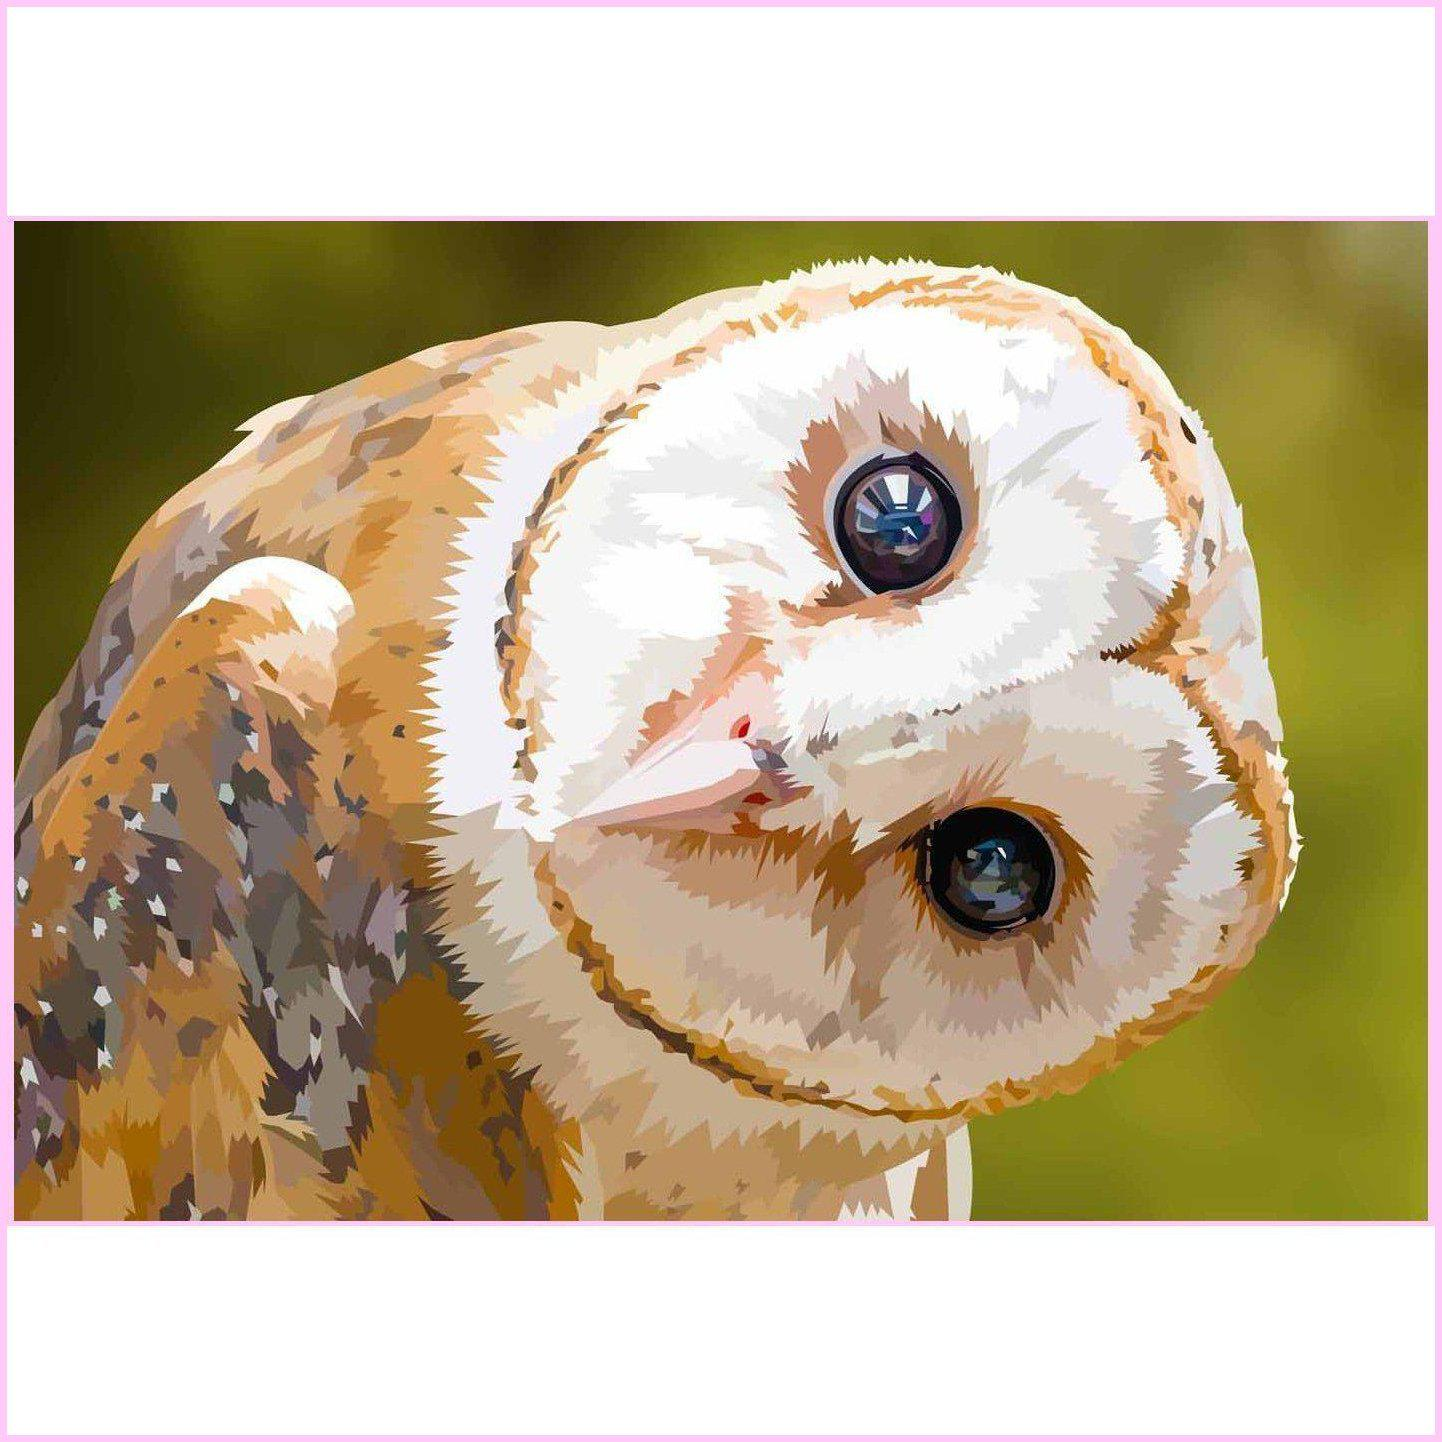 Peeking Barn Owl-Diamond Painting Kit-35x50cm (14x20 in)-Square-Heartful Diamonds